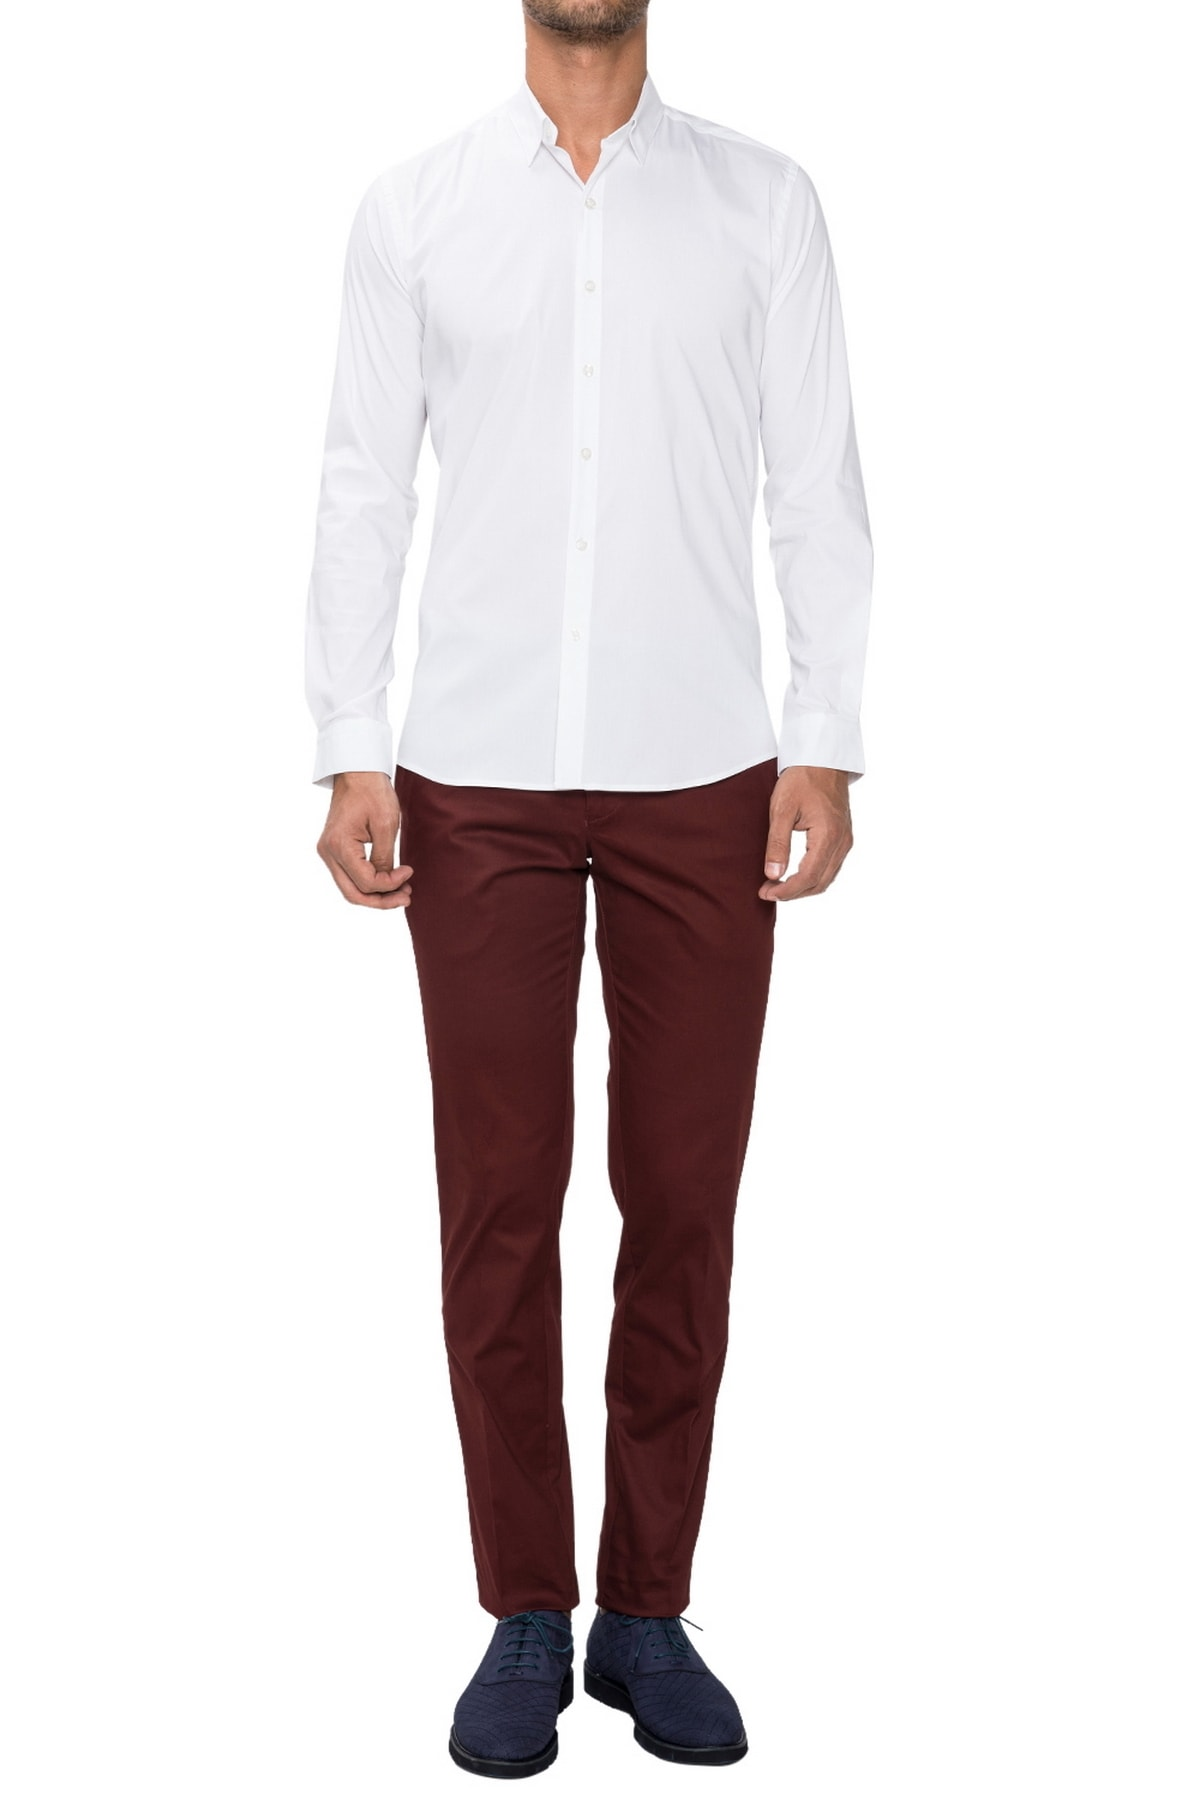 Efor P 1021 Slim Fit Bordo Spor Pantolon 1